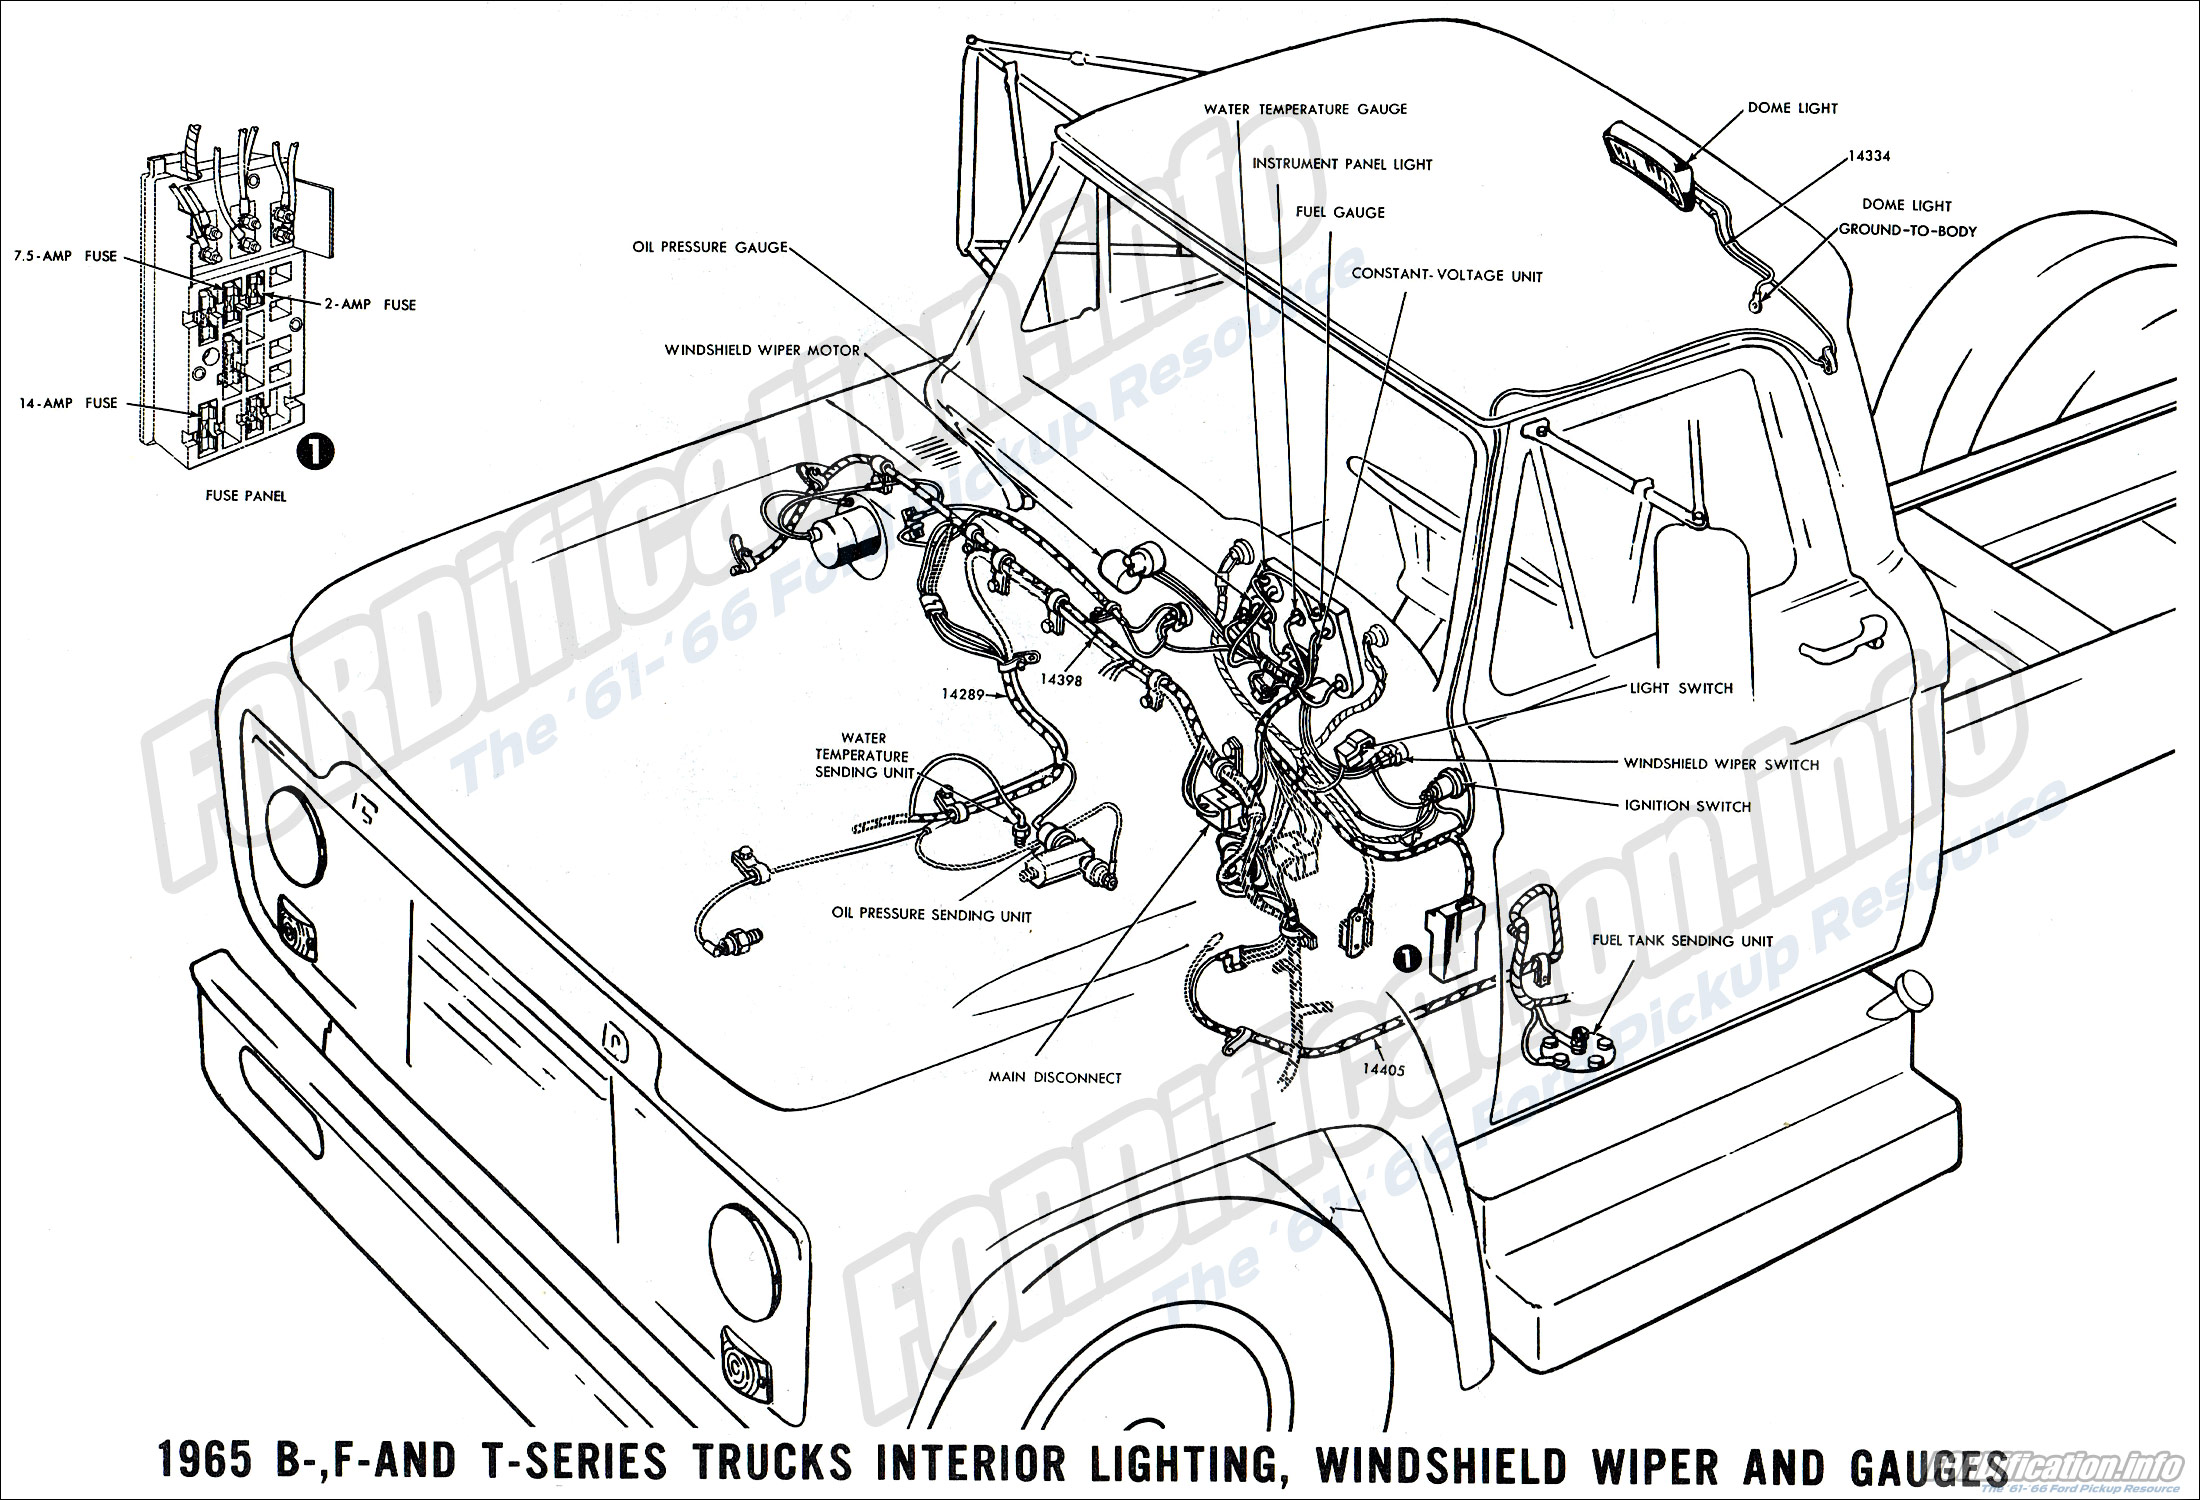 1965 ford truck wiring diagrams fordification info the 61 66 rh fordification info 79 ford truck